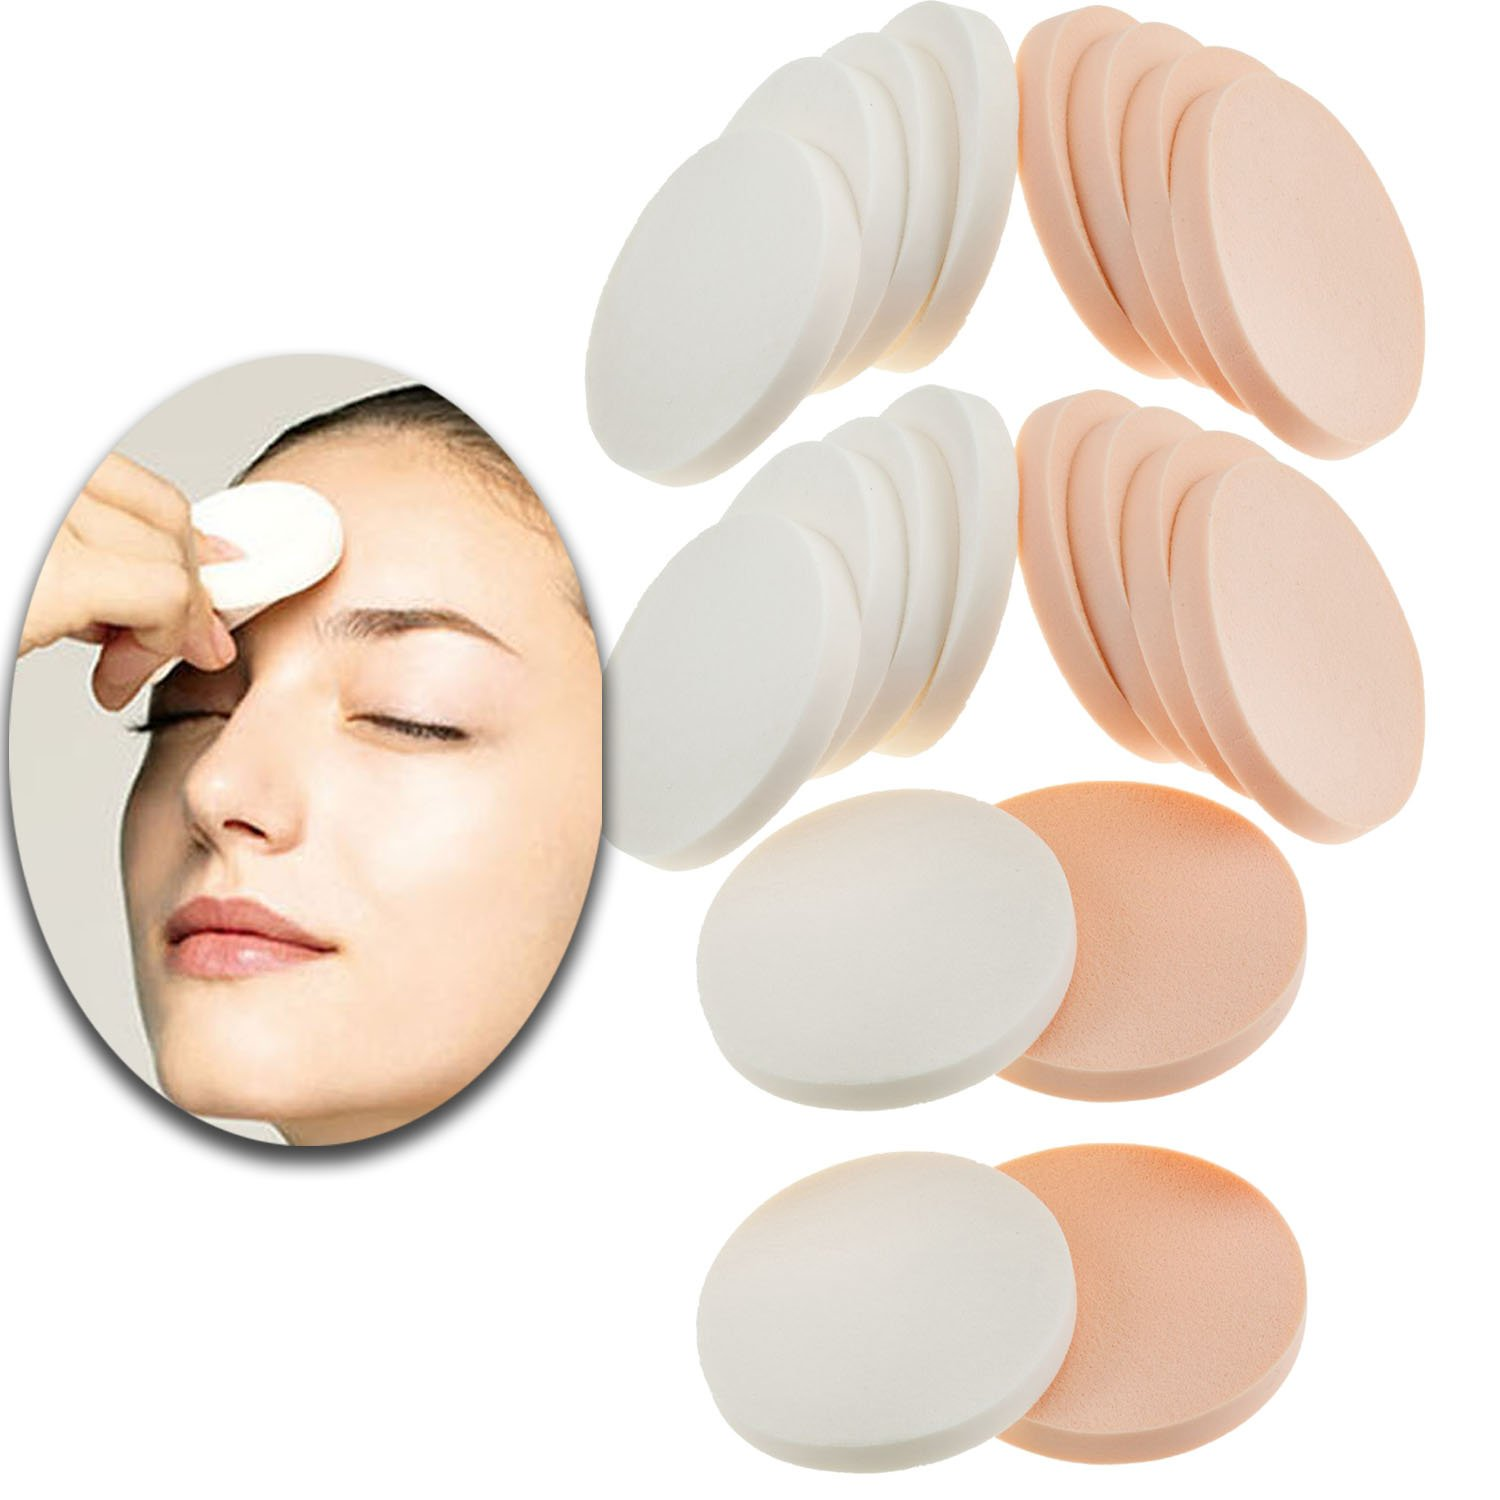 Beauty Make Up Set of 20pcs Latex Liquid Foundation Powders Compact Sponges Applicators Bronzers Concealers Application Rounds Blenders Blending Tools In Pink and White Colors